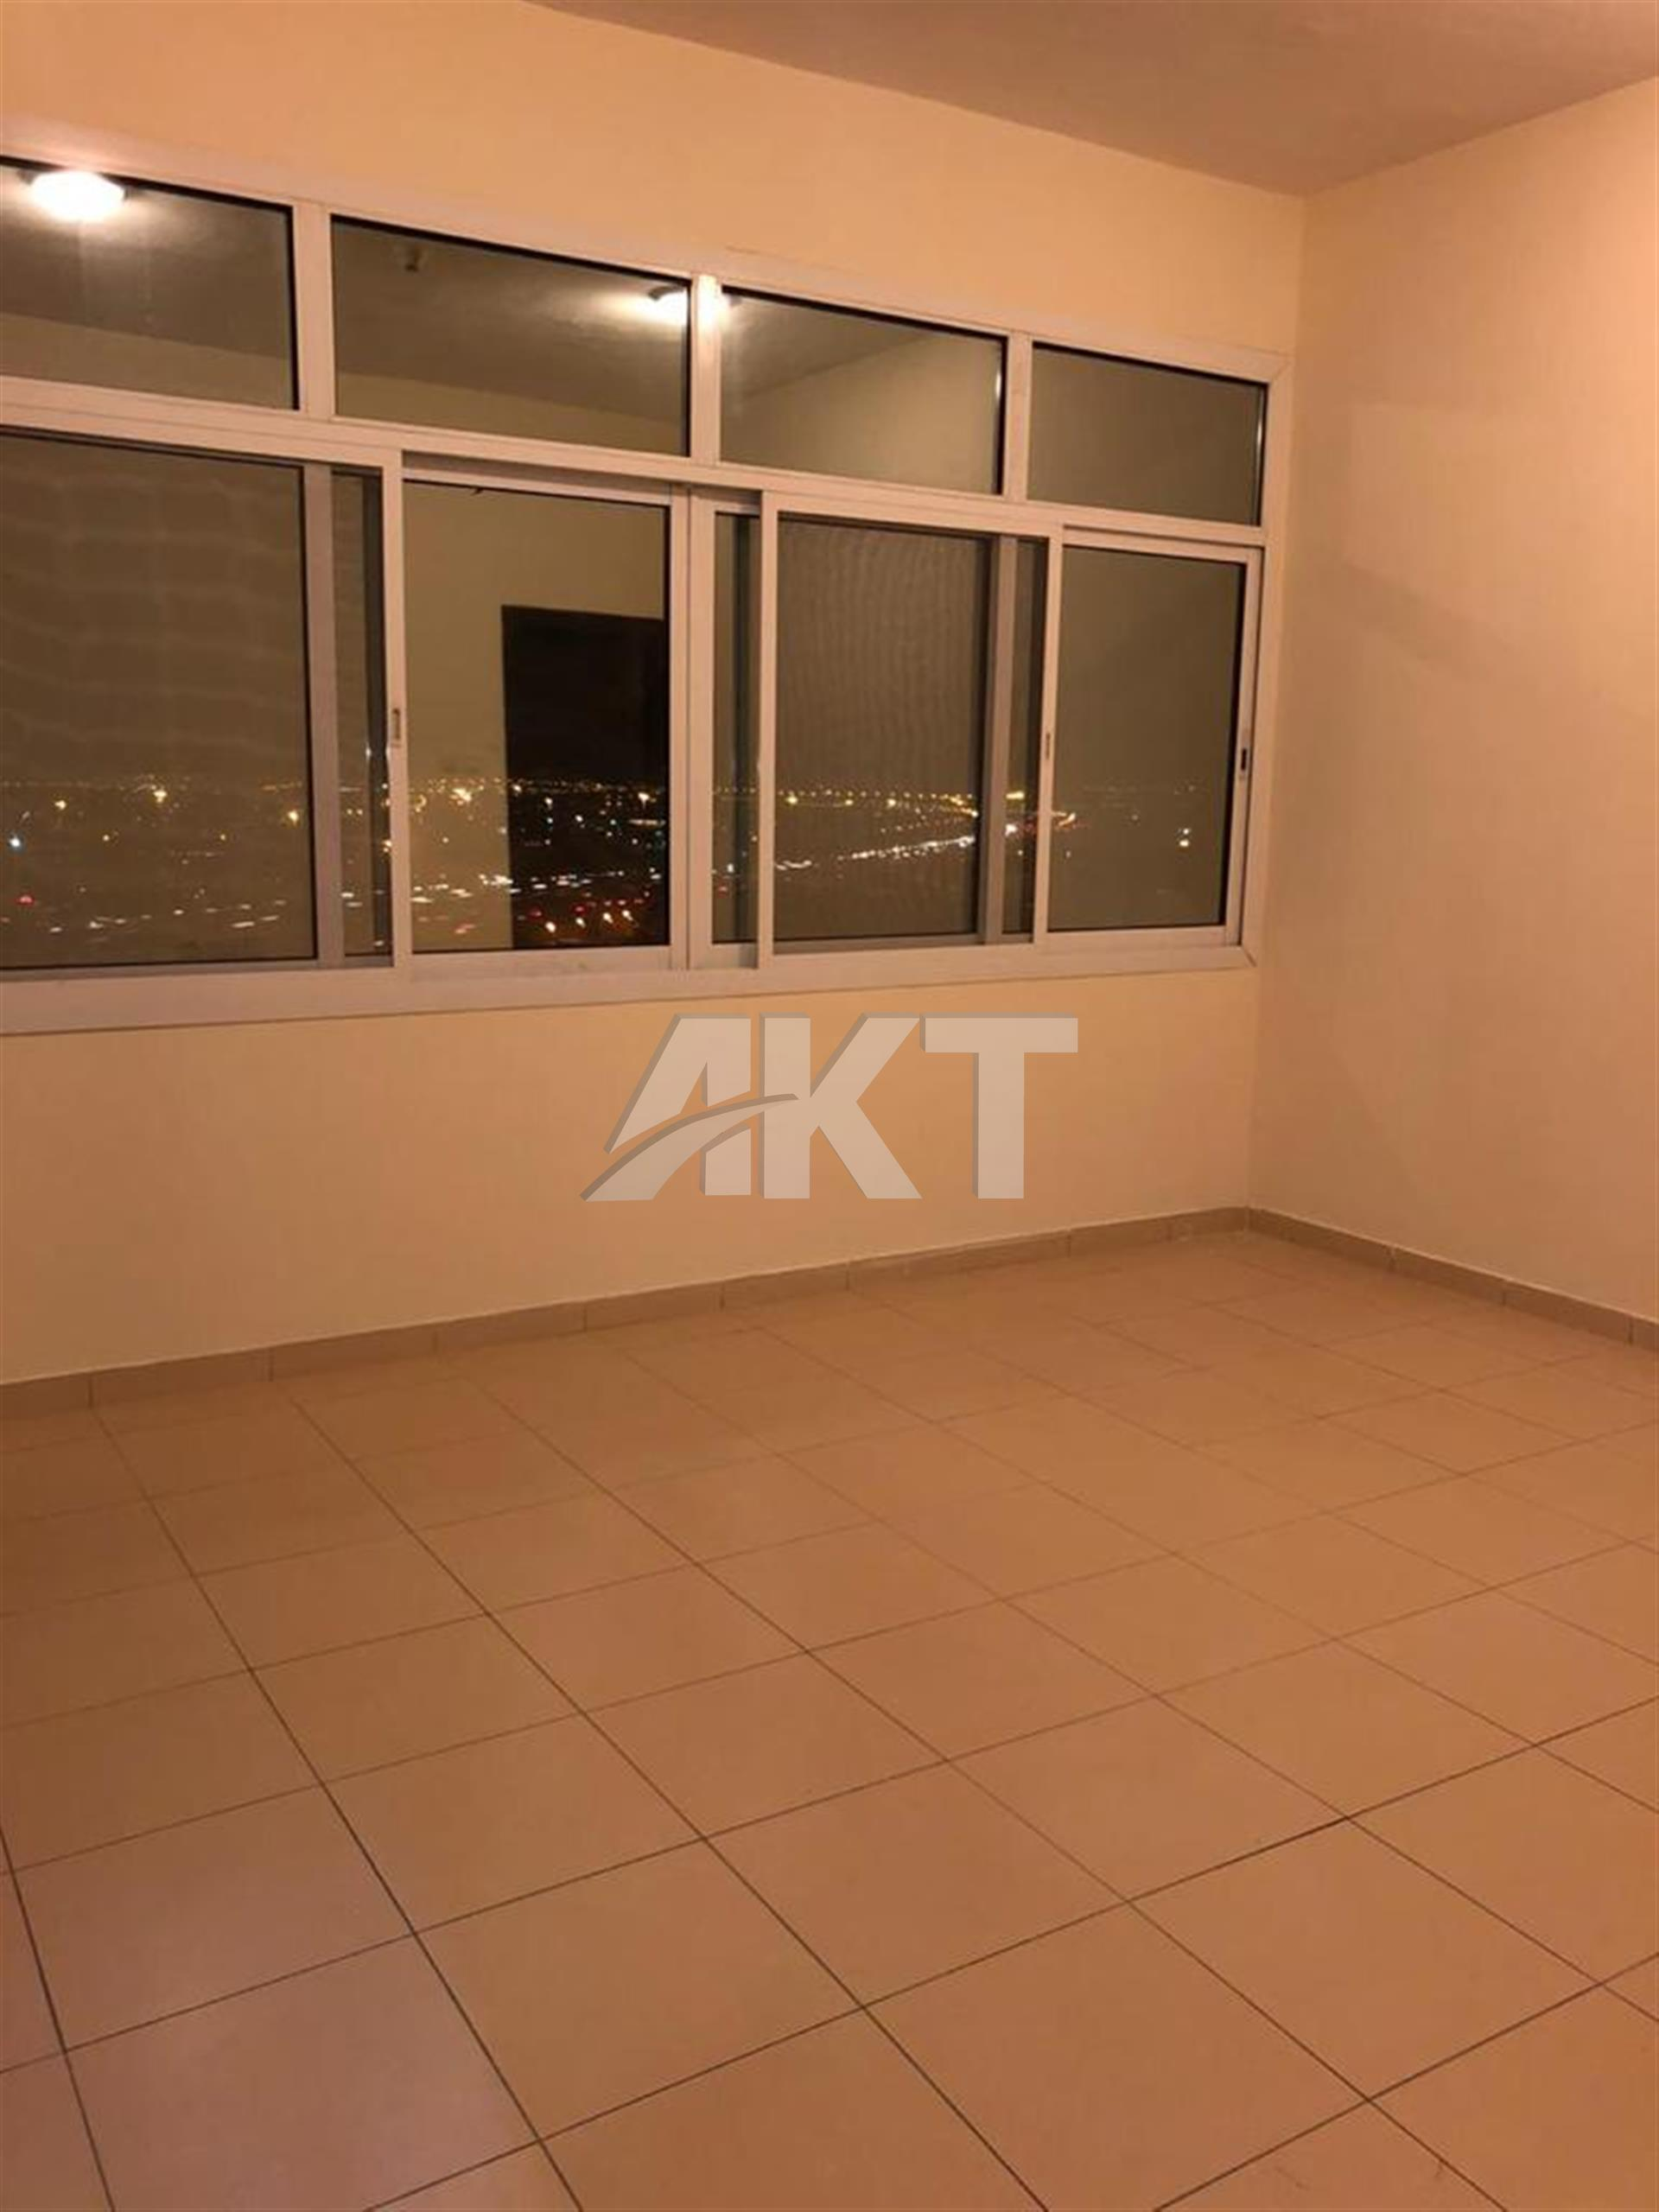 55 K / High floor / 3 Br / Very Nice View & Lay out / Direct Access to Emirates & Al Ain Road